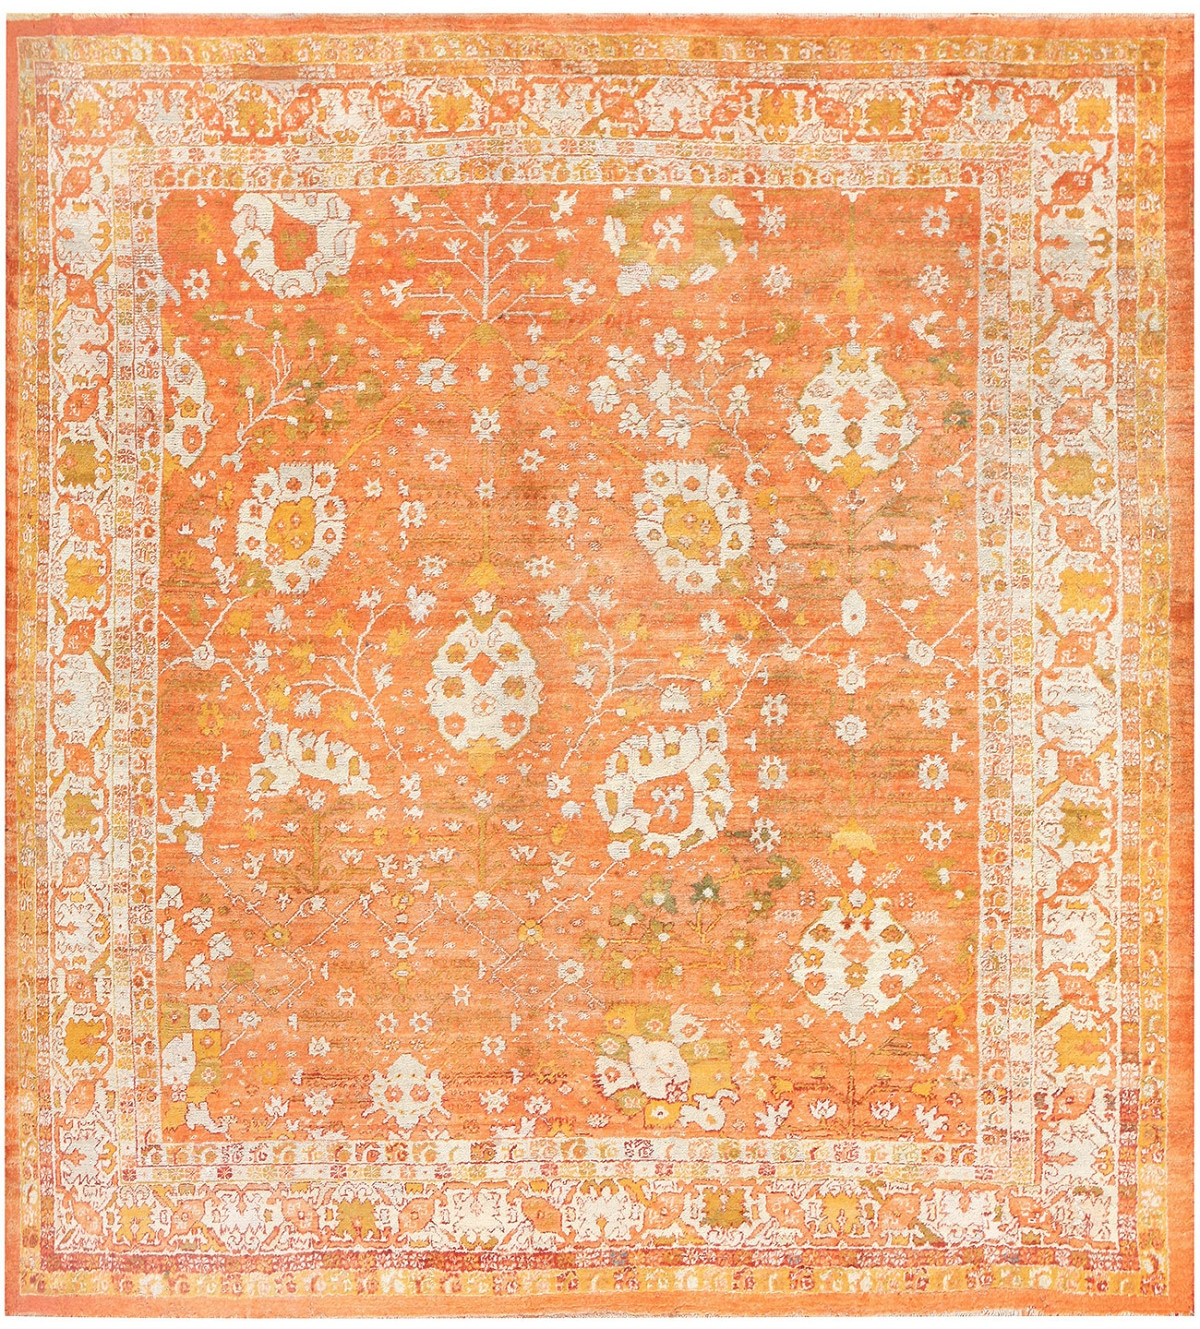 Nazmiyal Angora Antique Turkish Oushak Rug 50209